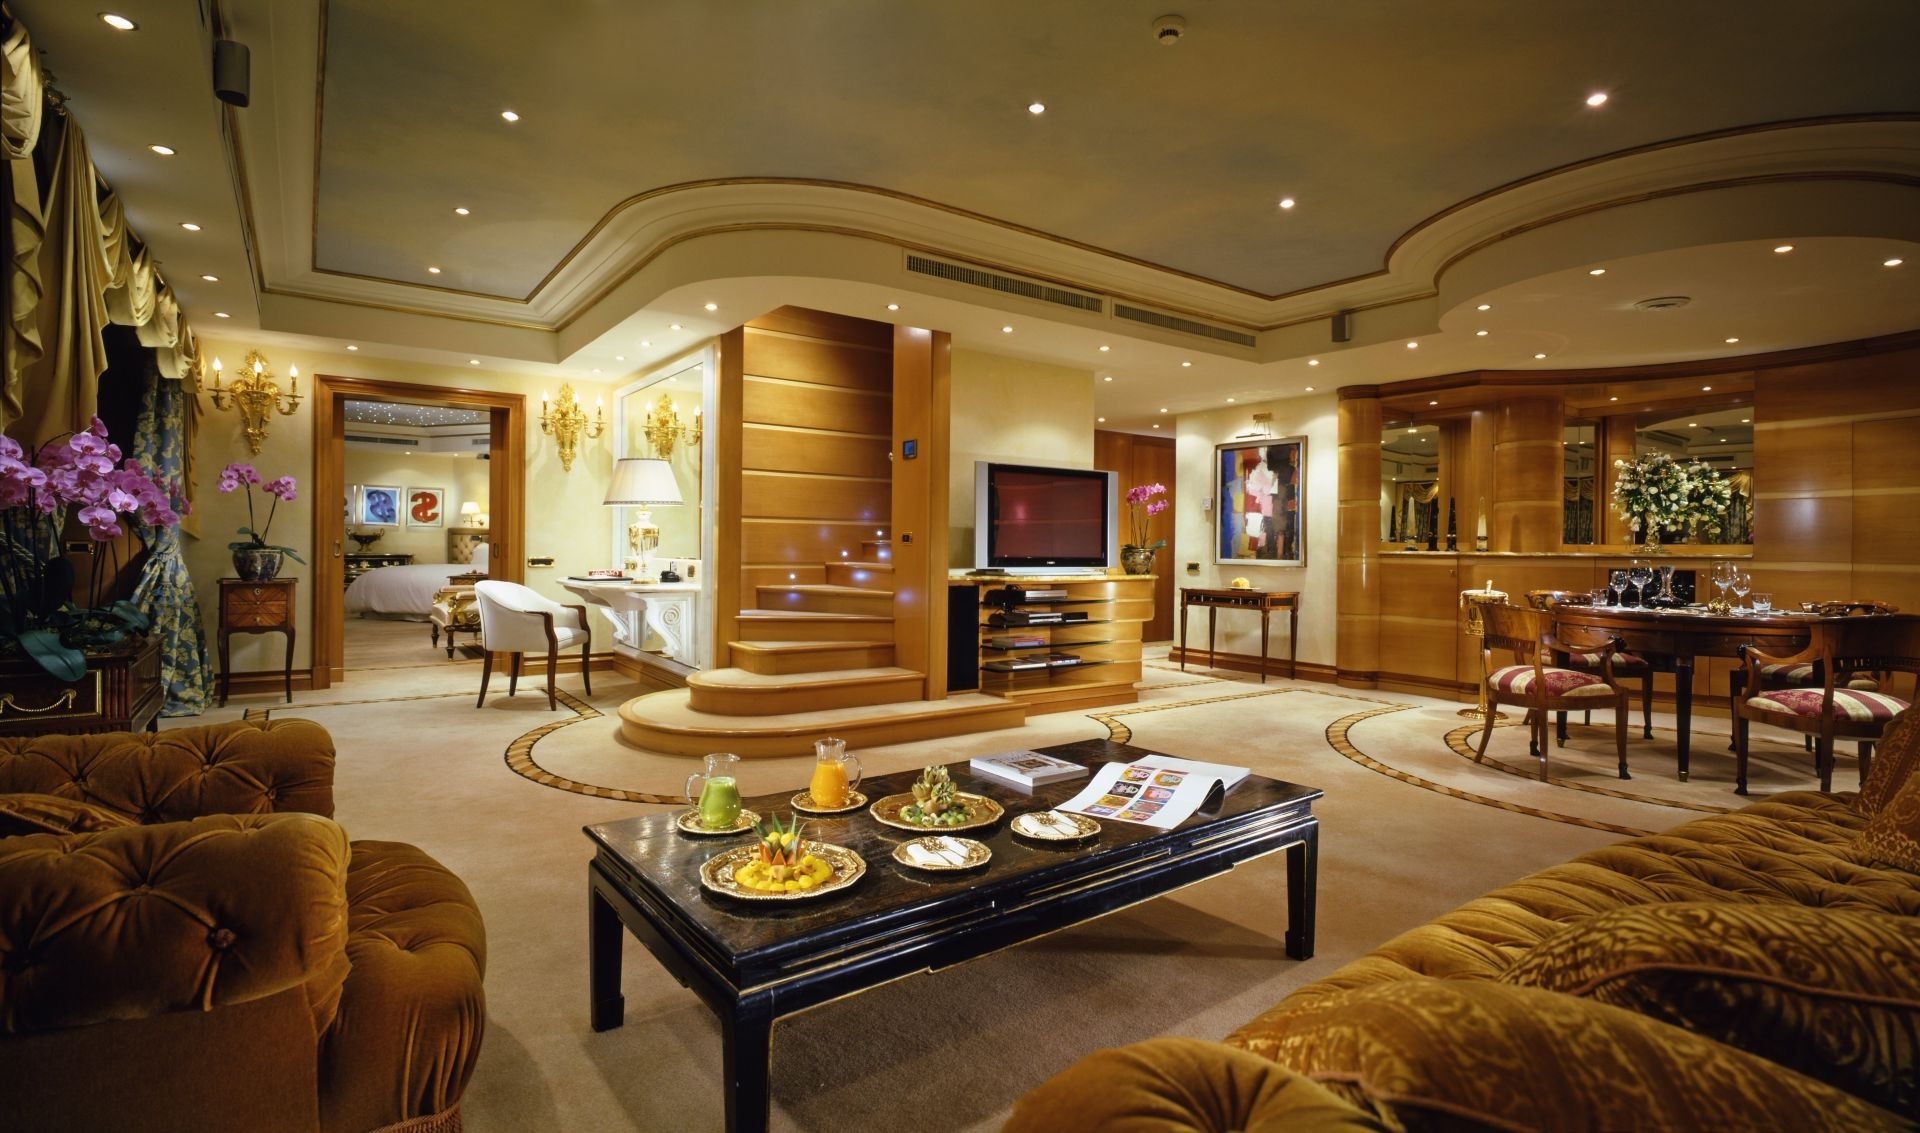 TV stair penthouse Apartment luxury chandelier